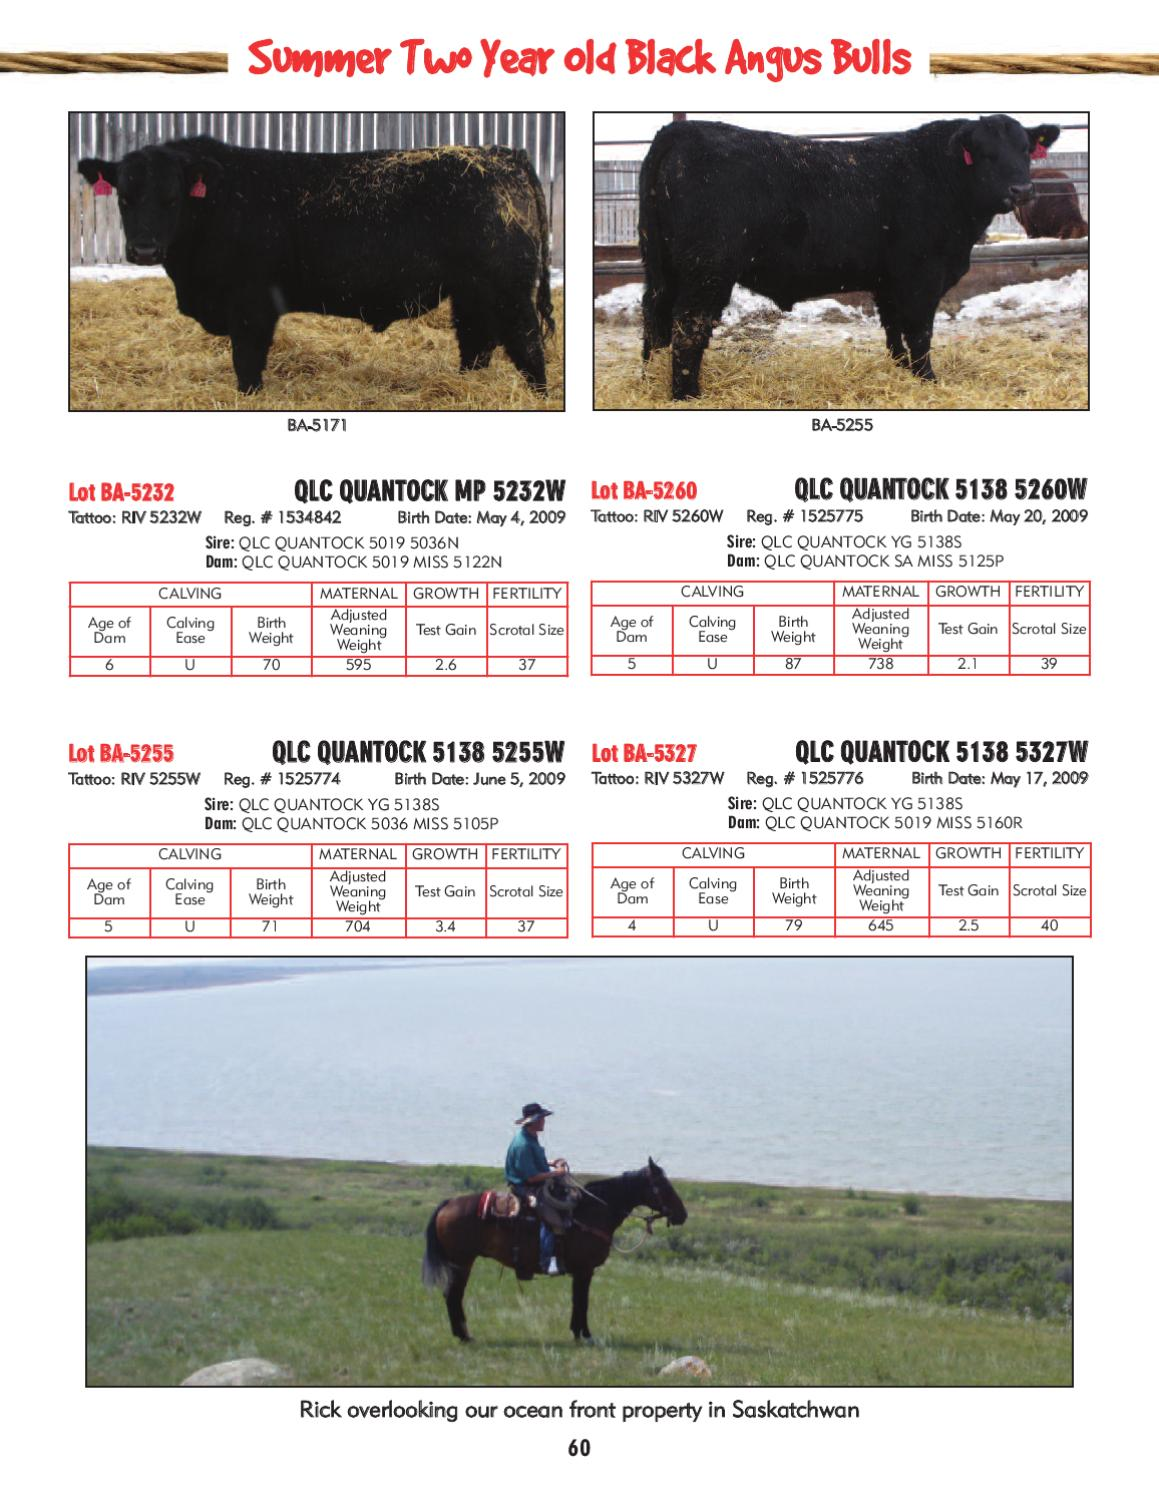 MC Quantock Bull Sale by Today's Publishing Inc  - issuu